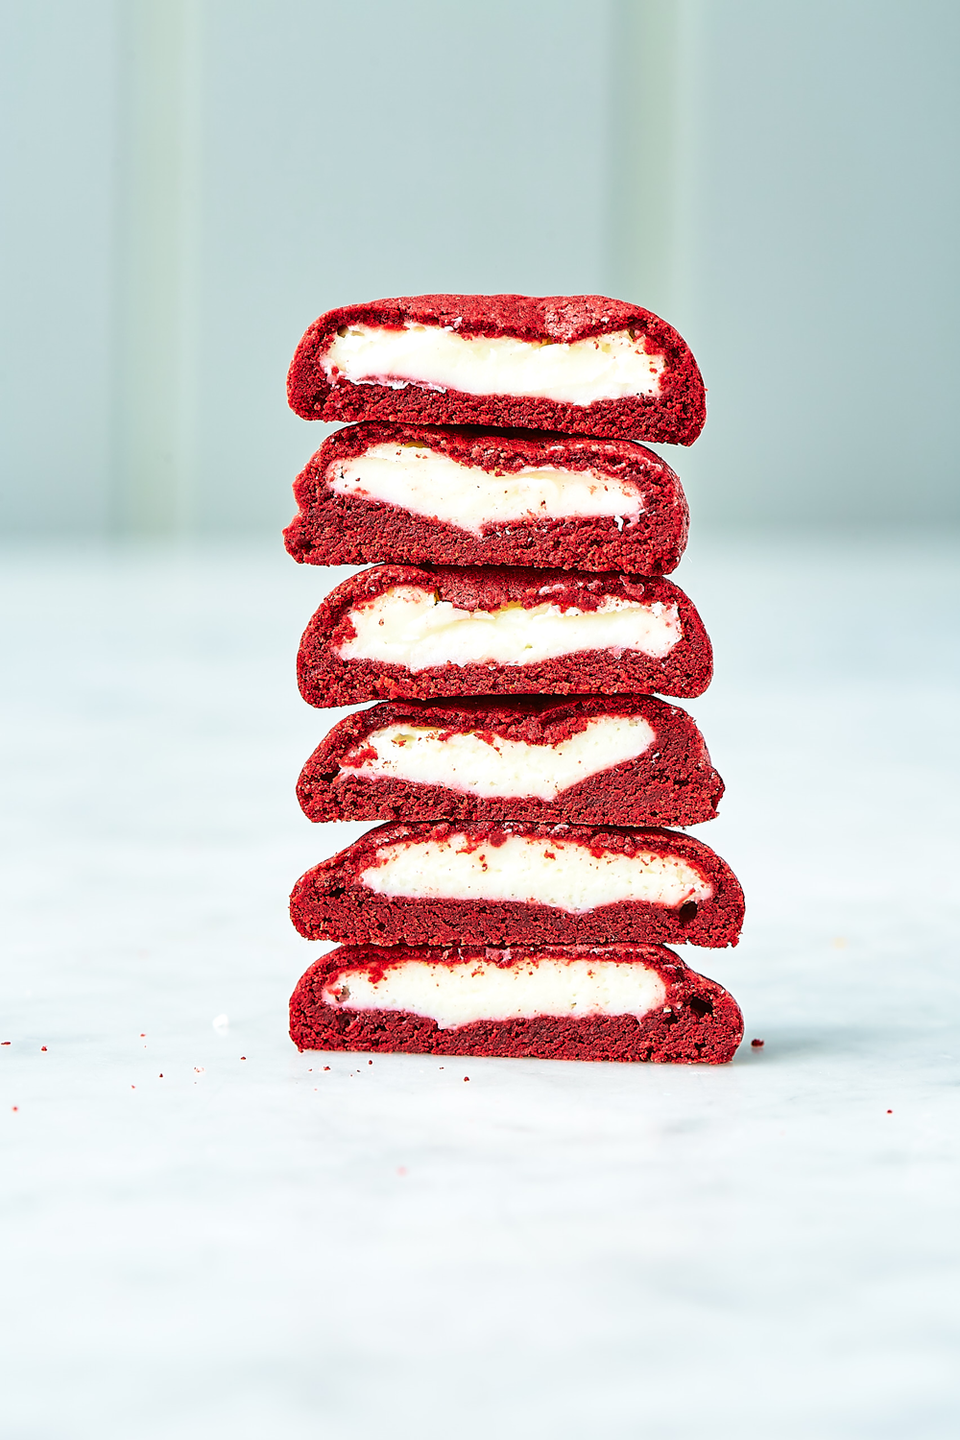 """<p>Red velvet perfection.</p><p>Get the recipe from <a href=""""https://www.delish.com/cooking/recipe-ideas/a19633262/inside-out-red-velvet-cookies-recipe/"""" rel=""""nofollow noopener"""" target=""""_blank"""" data-ylk=""""slk:Delish"""" class=""""link rapid-noclick-resp"""">Delish</a>.</p>"""